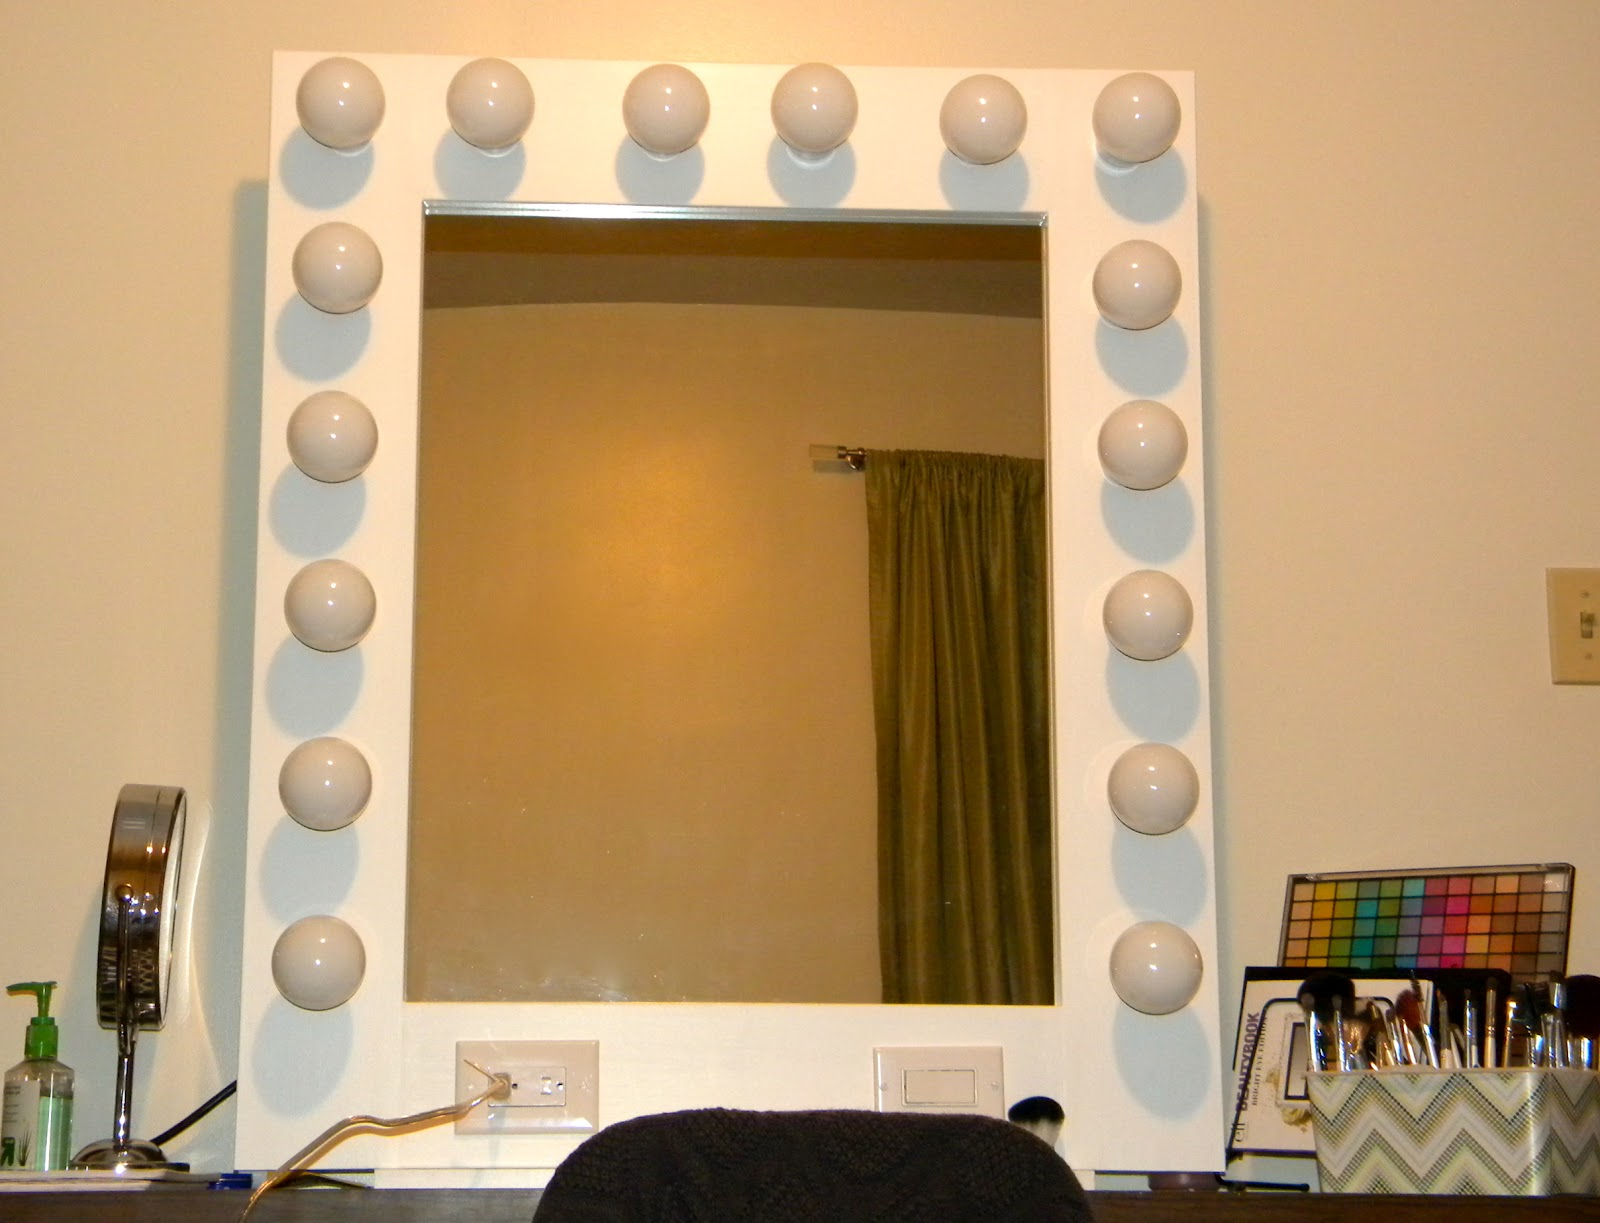 be u tiful imperfection is beauty madness is genius hollywood style vanity mirror completed. Black Bedroom Furniture Sets. Home Design Ideas